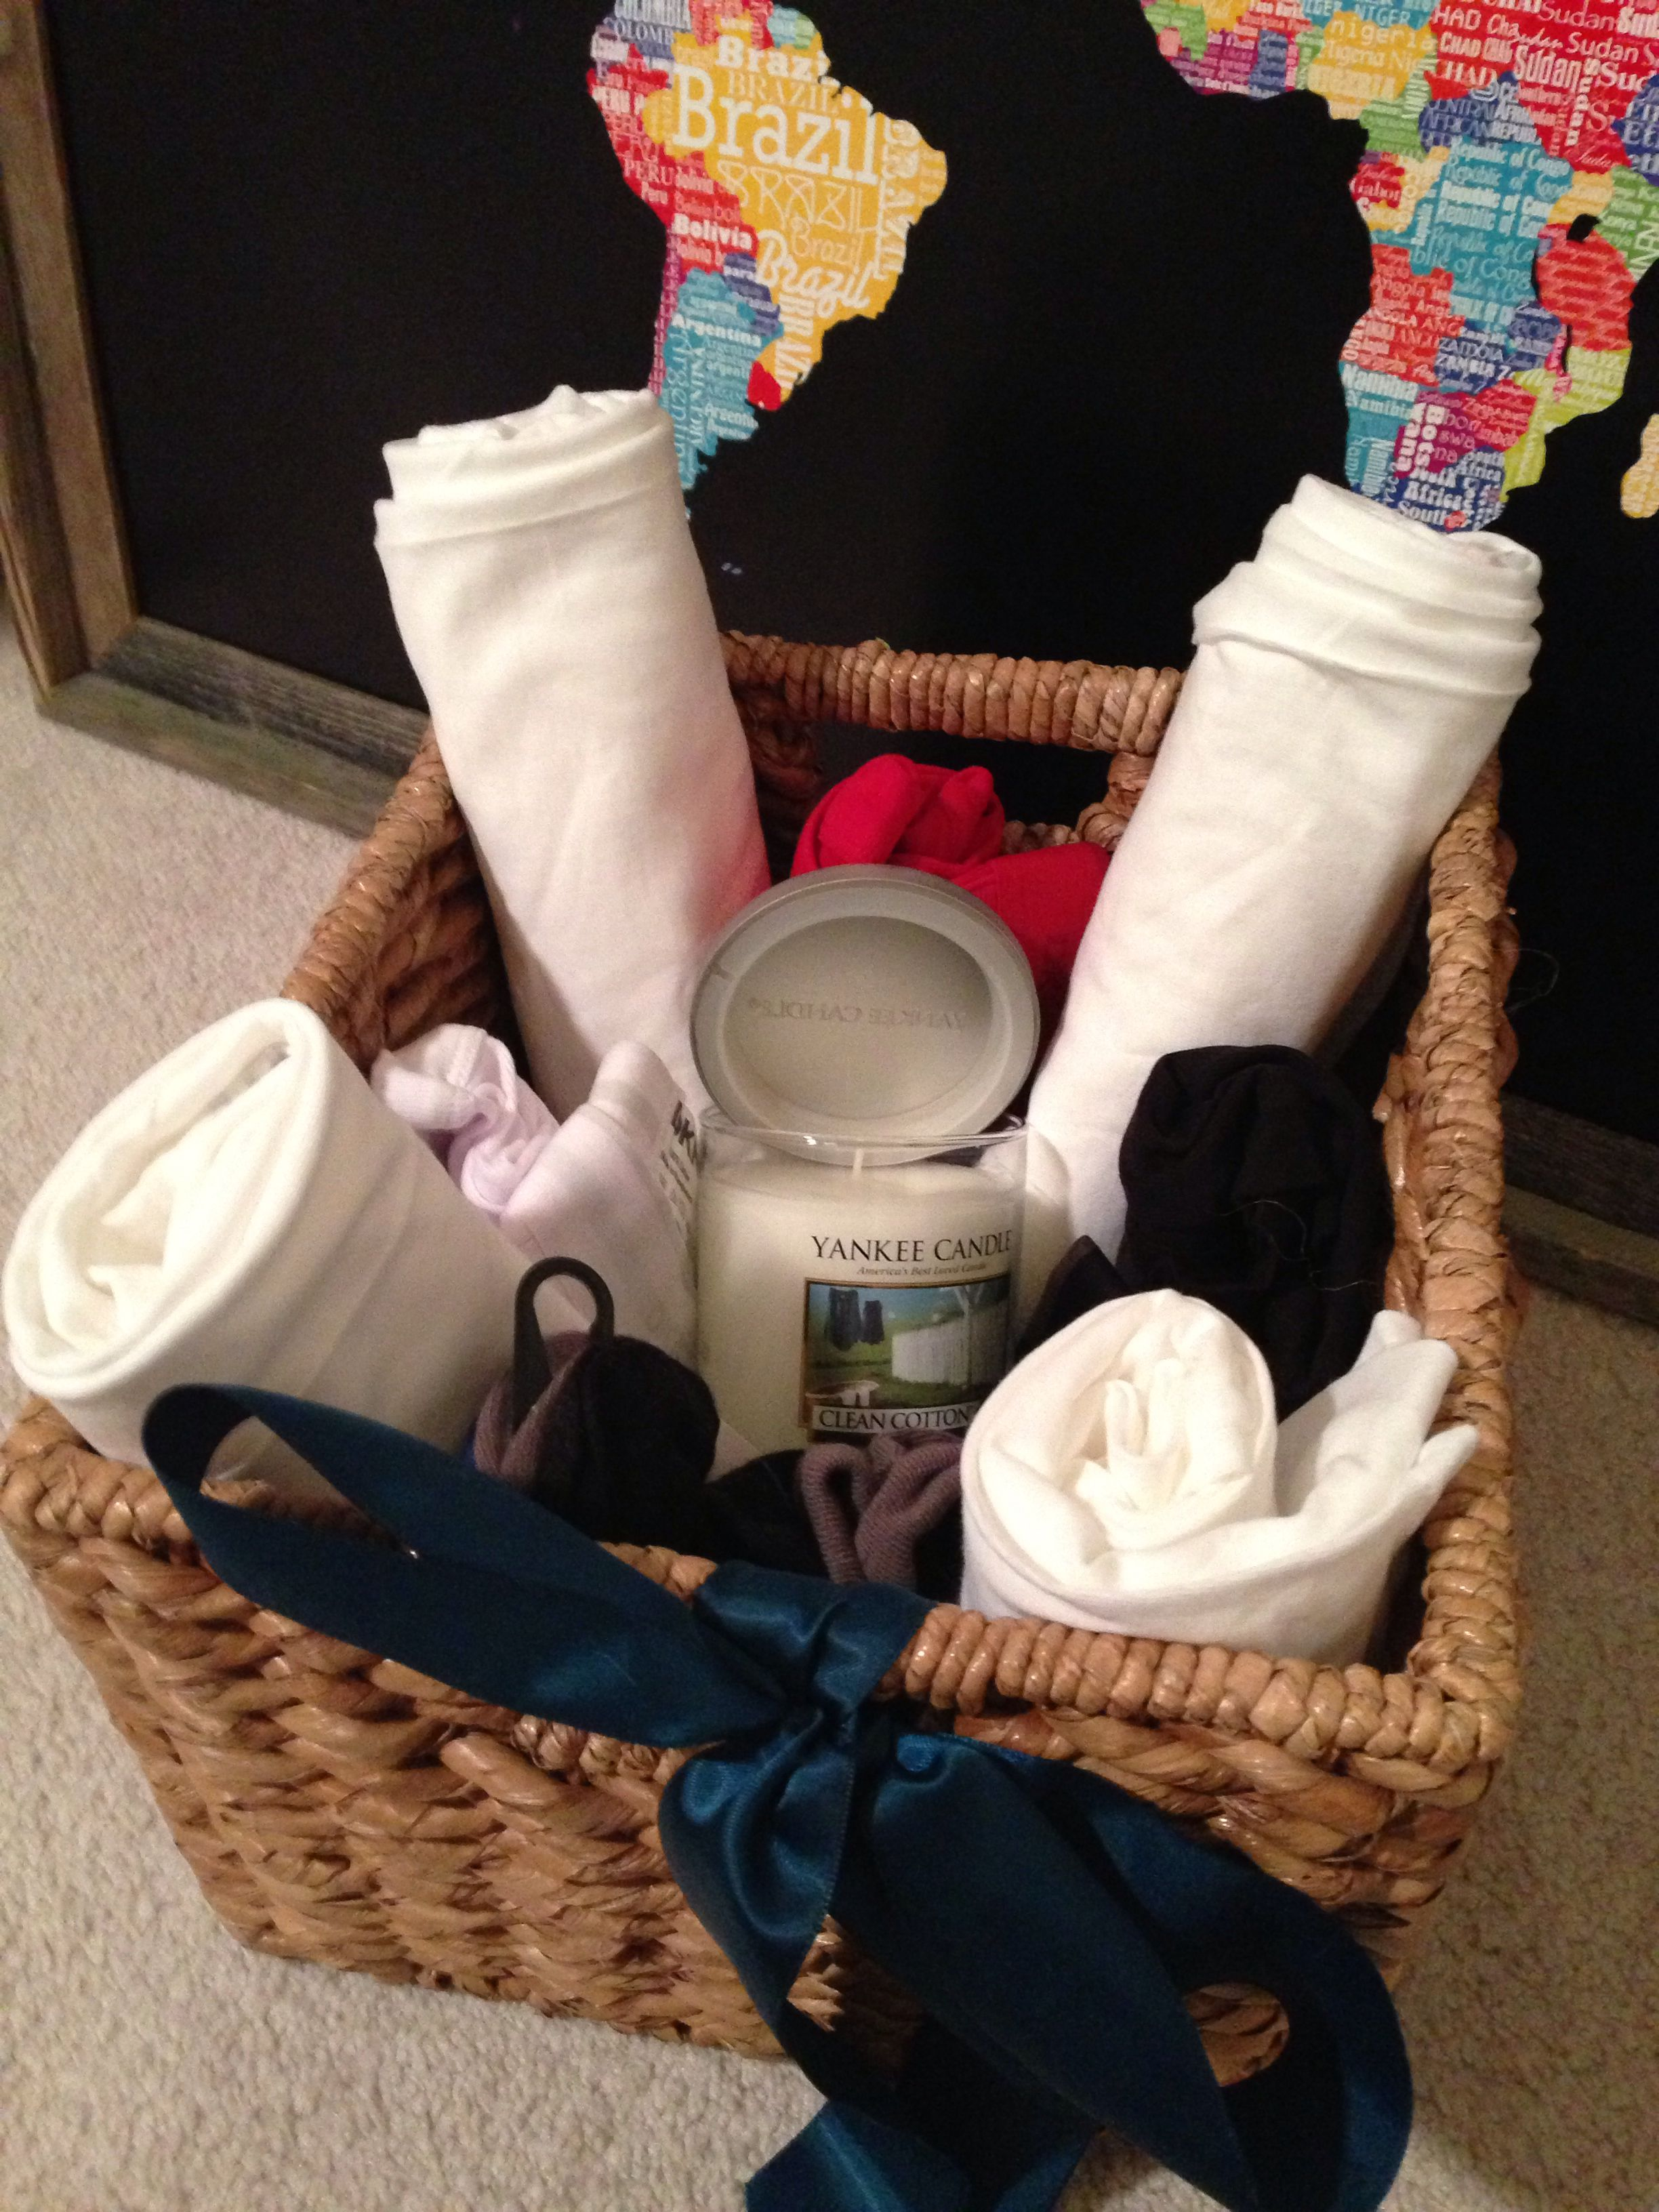 Cotton Wedding Anniversary Gifts For Him: 2nd Wedding Anniversary Gift Idea - Cotton Basket.